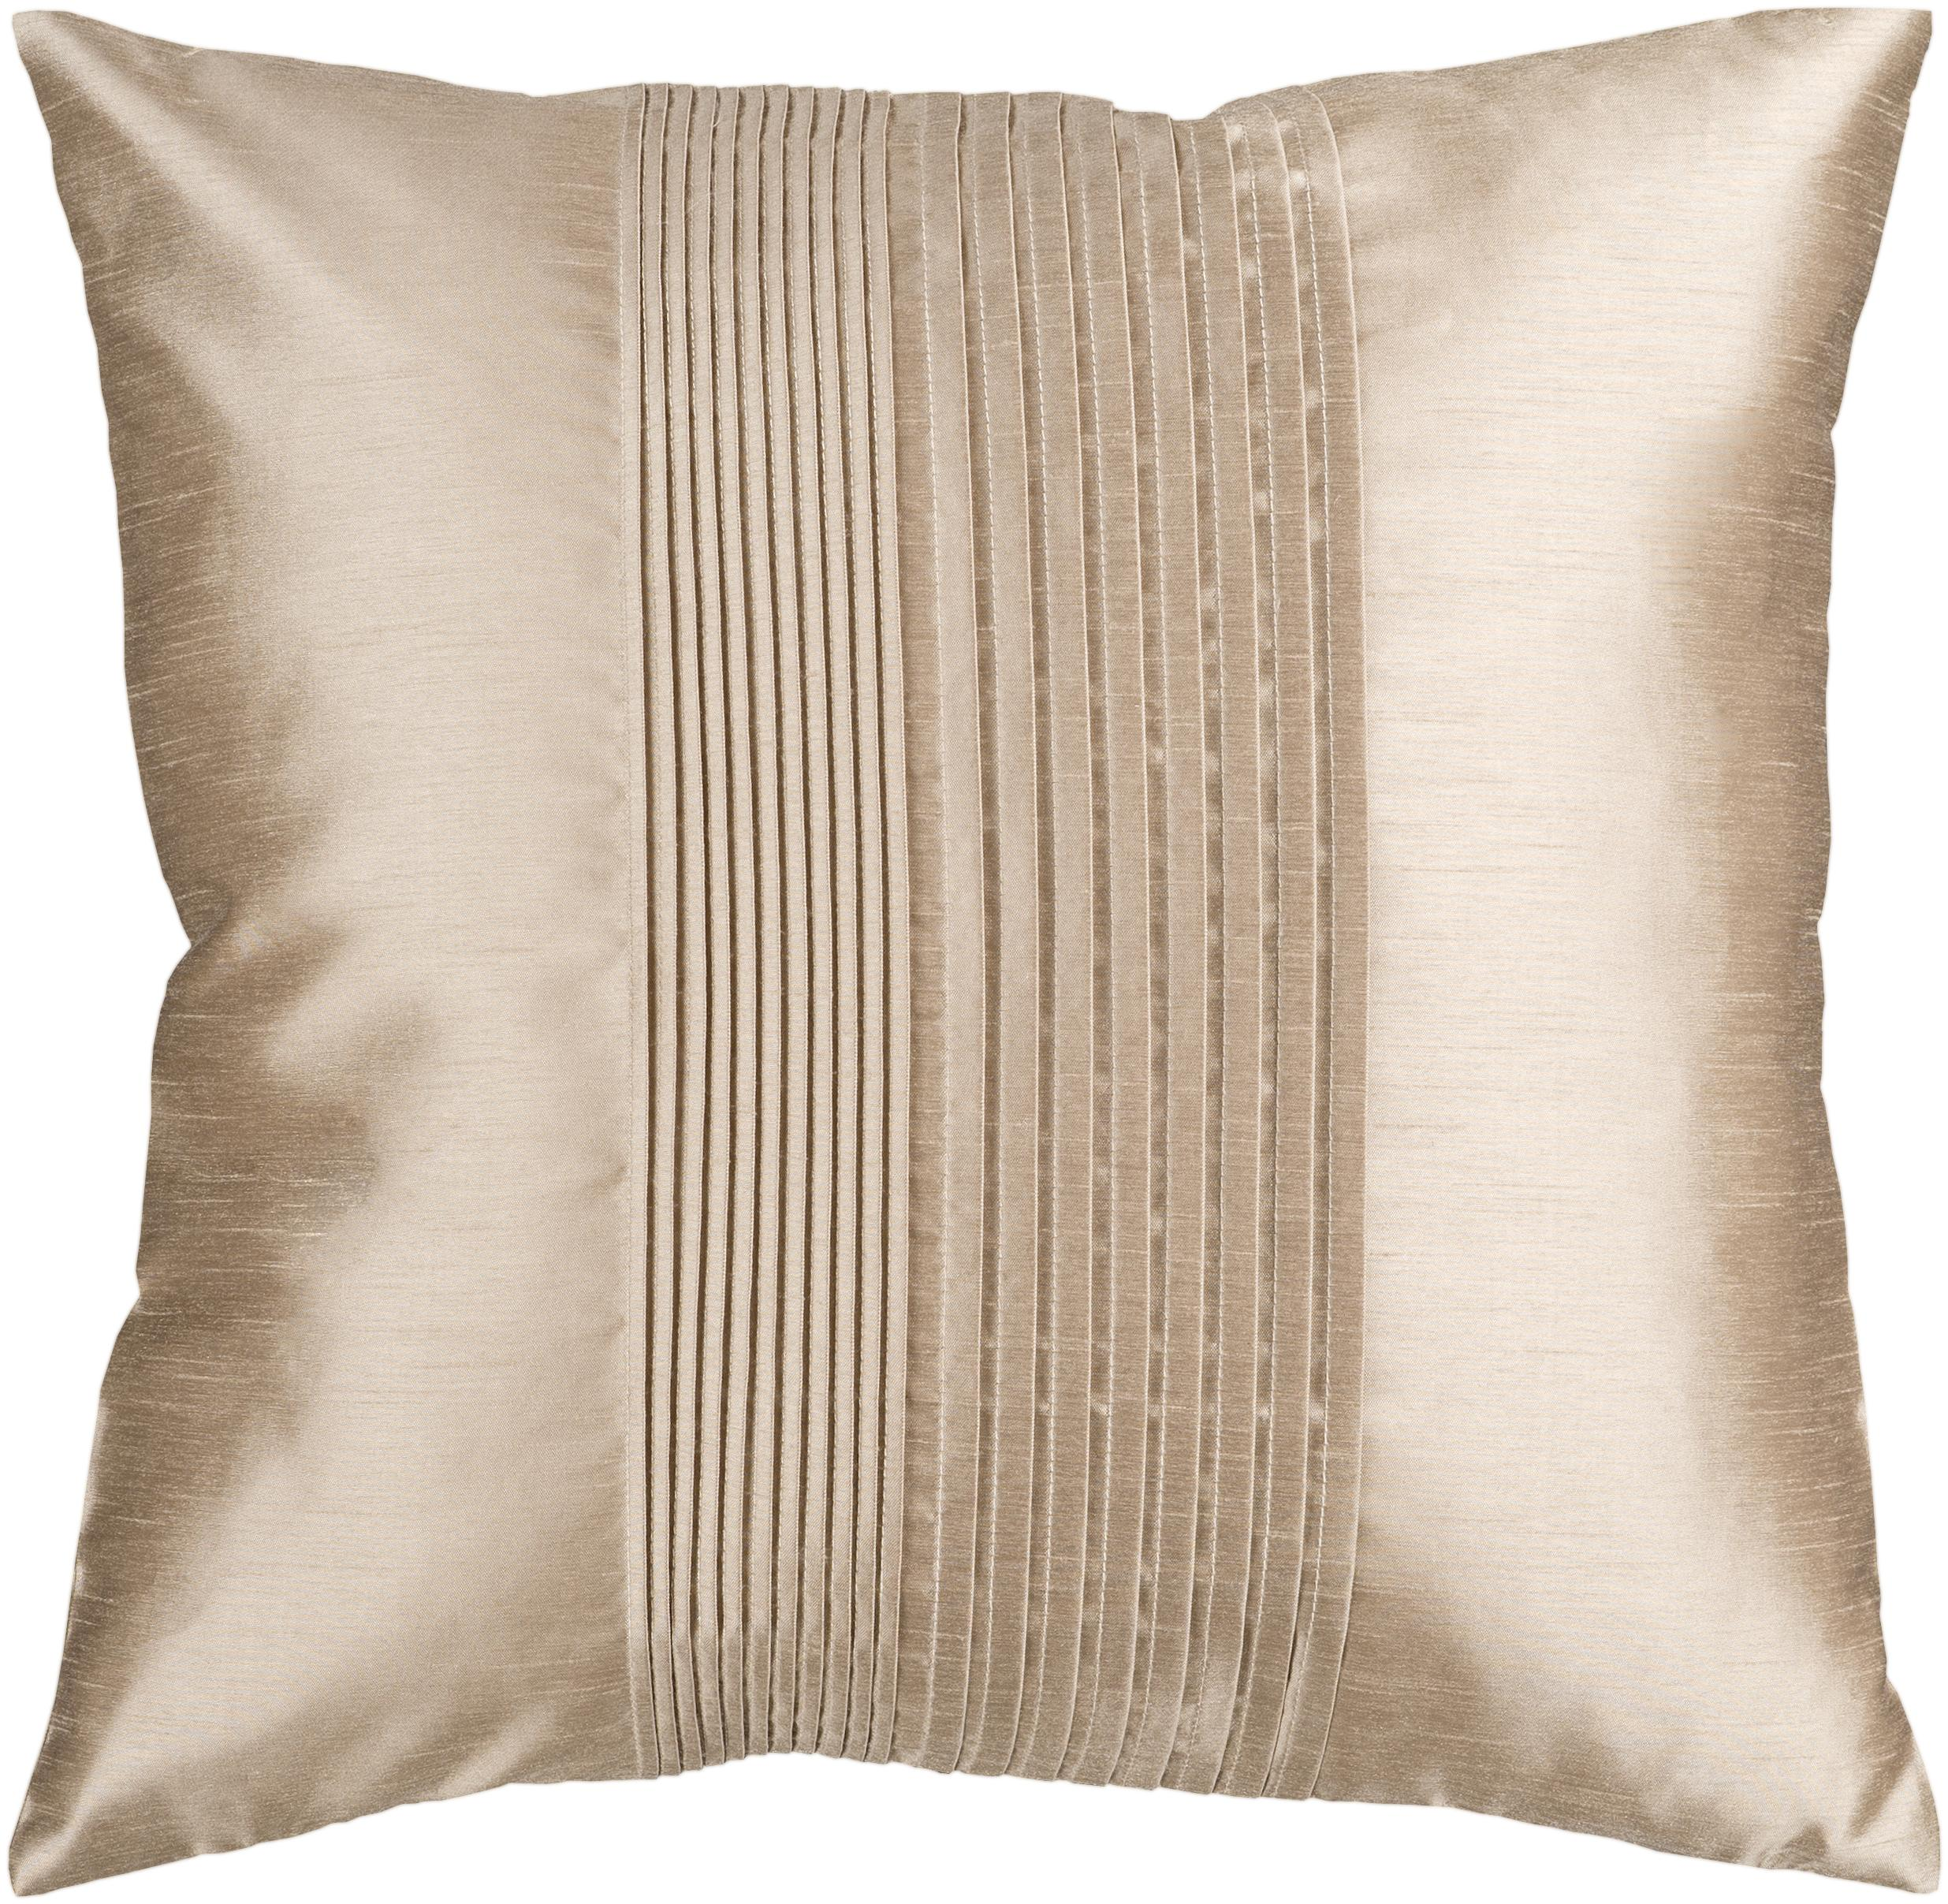 "Surya Rugs Pillows 22"" x 22"" Pillow - Item Number: HH019-2222P"